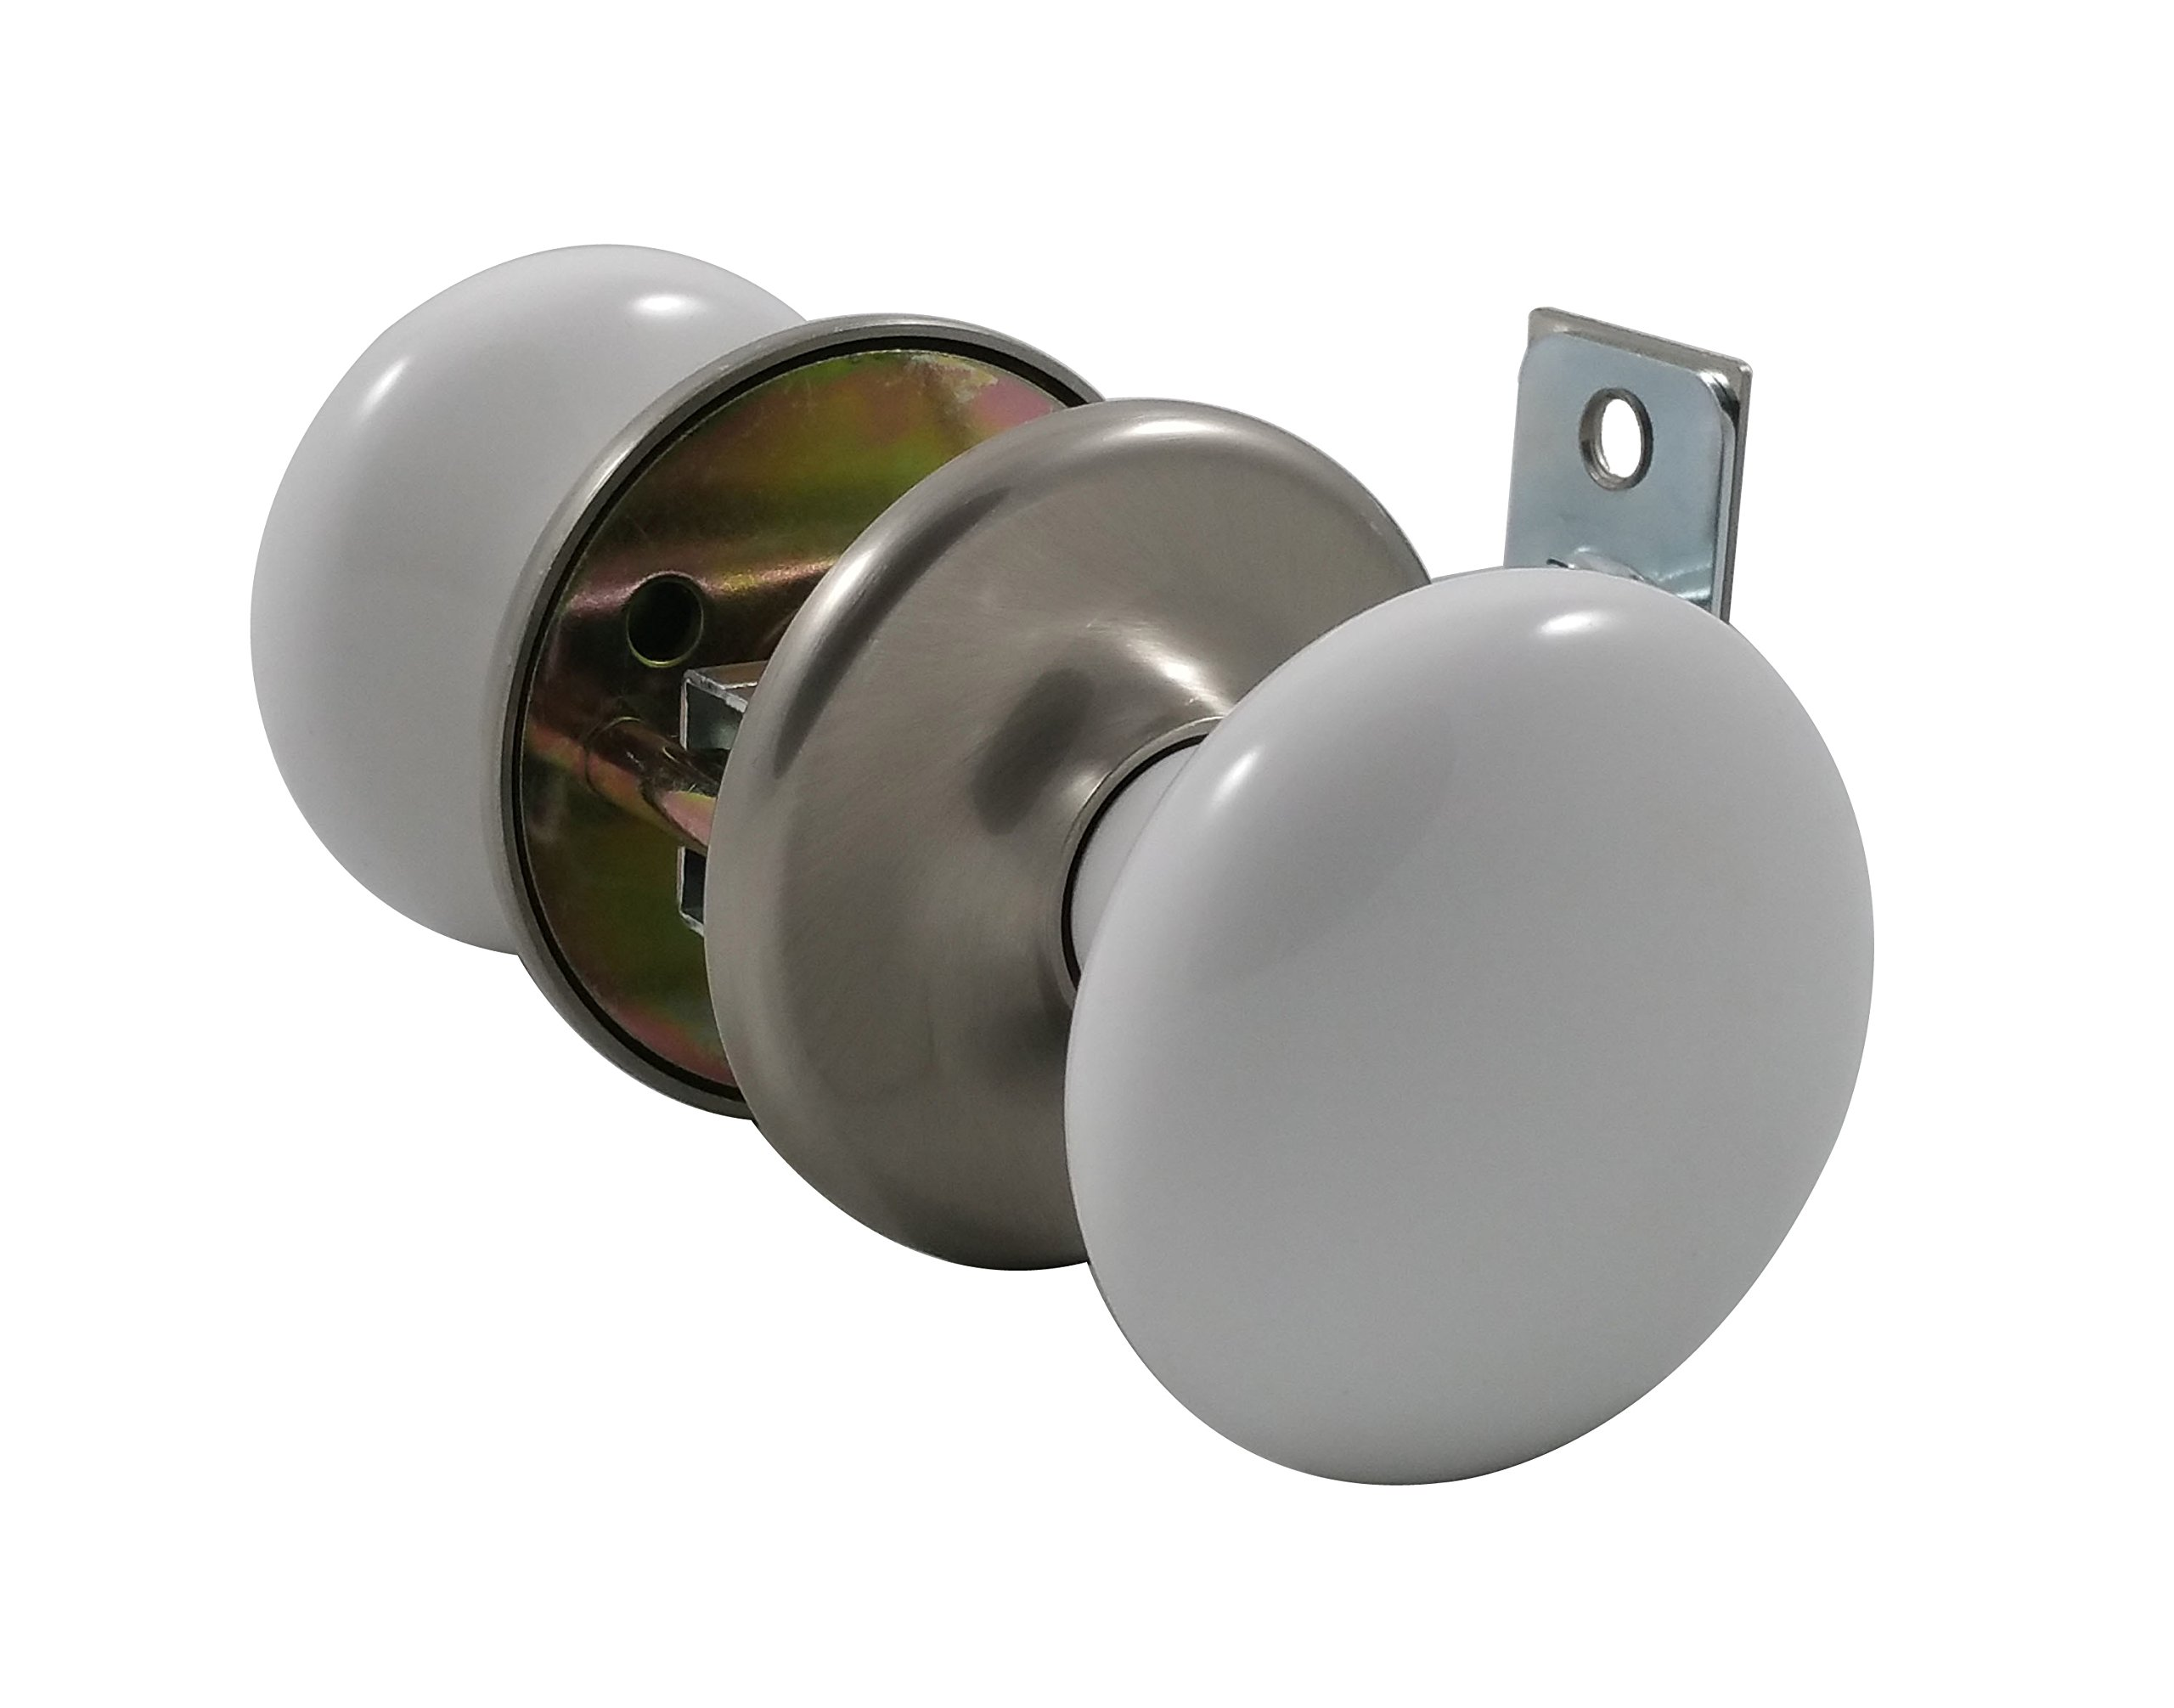 White Porcelain & Brushed Nickel Door Knob, Solid Elegant Door Knob Set with No Visible Screws for a Crisp Clean Finish (Passage 2-3/8'')